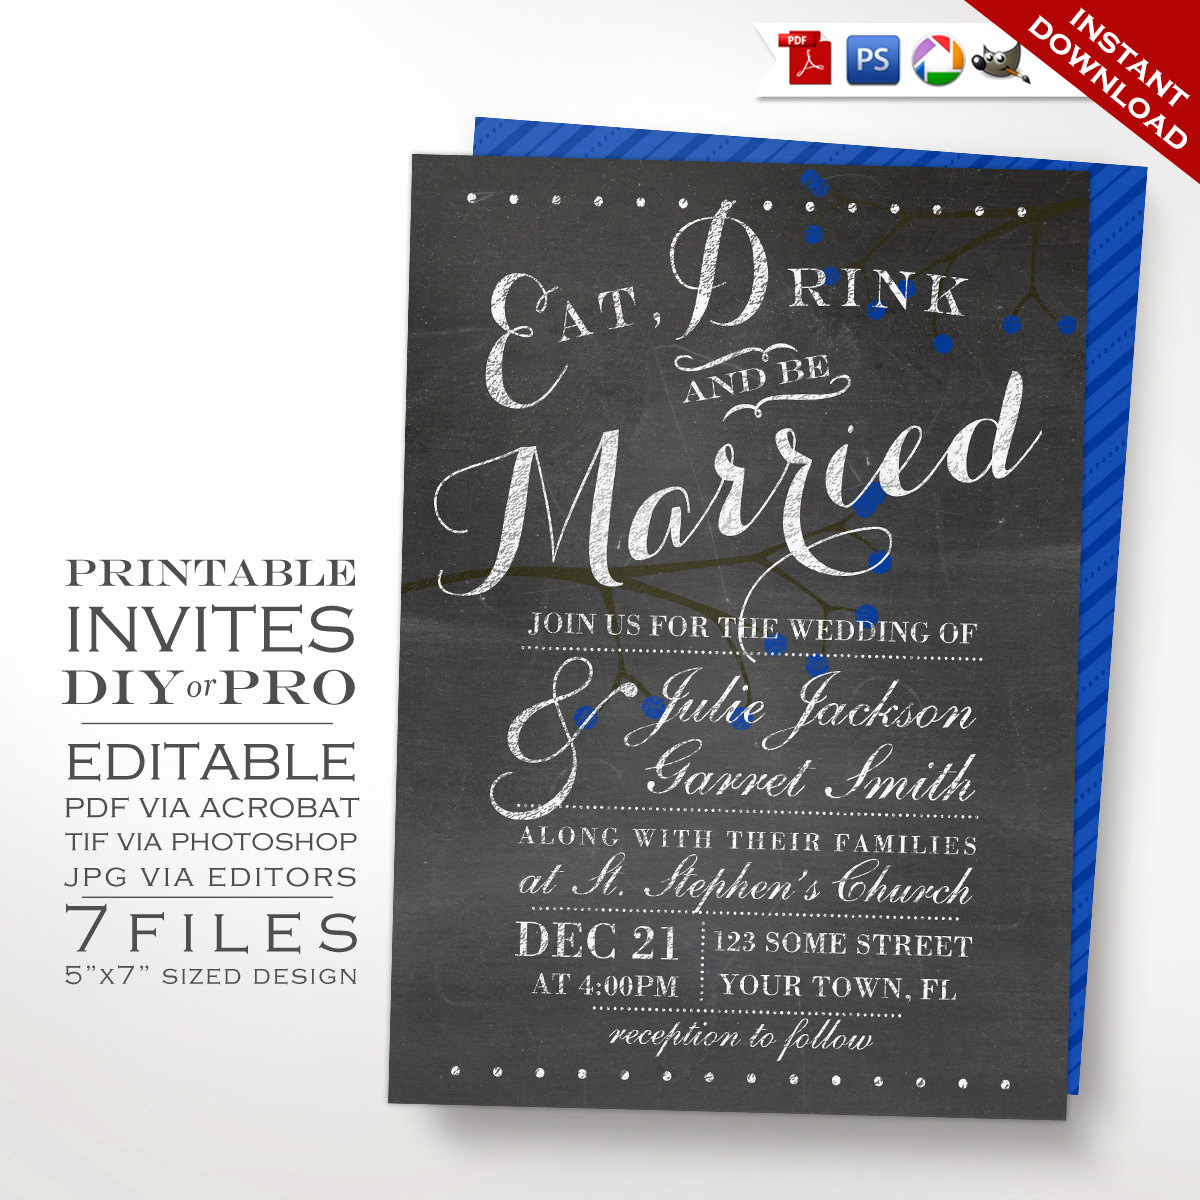 Chalkboard Invitation Template Free Inspirational Printable Diy Berries Chalkboard Royal Blue Wedding